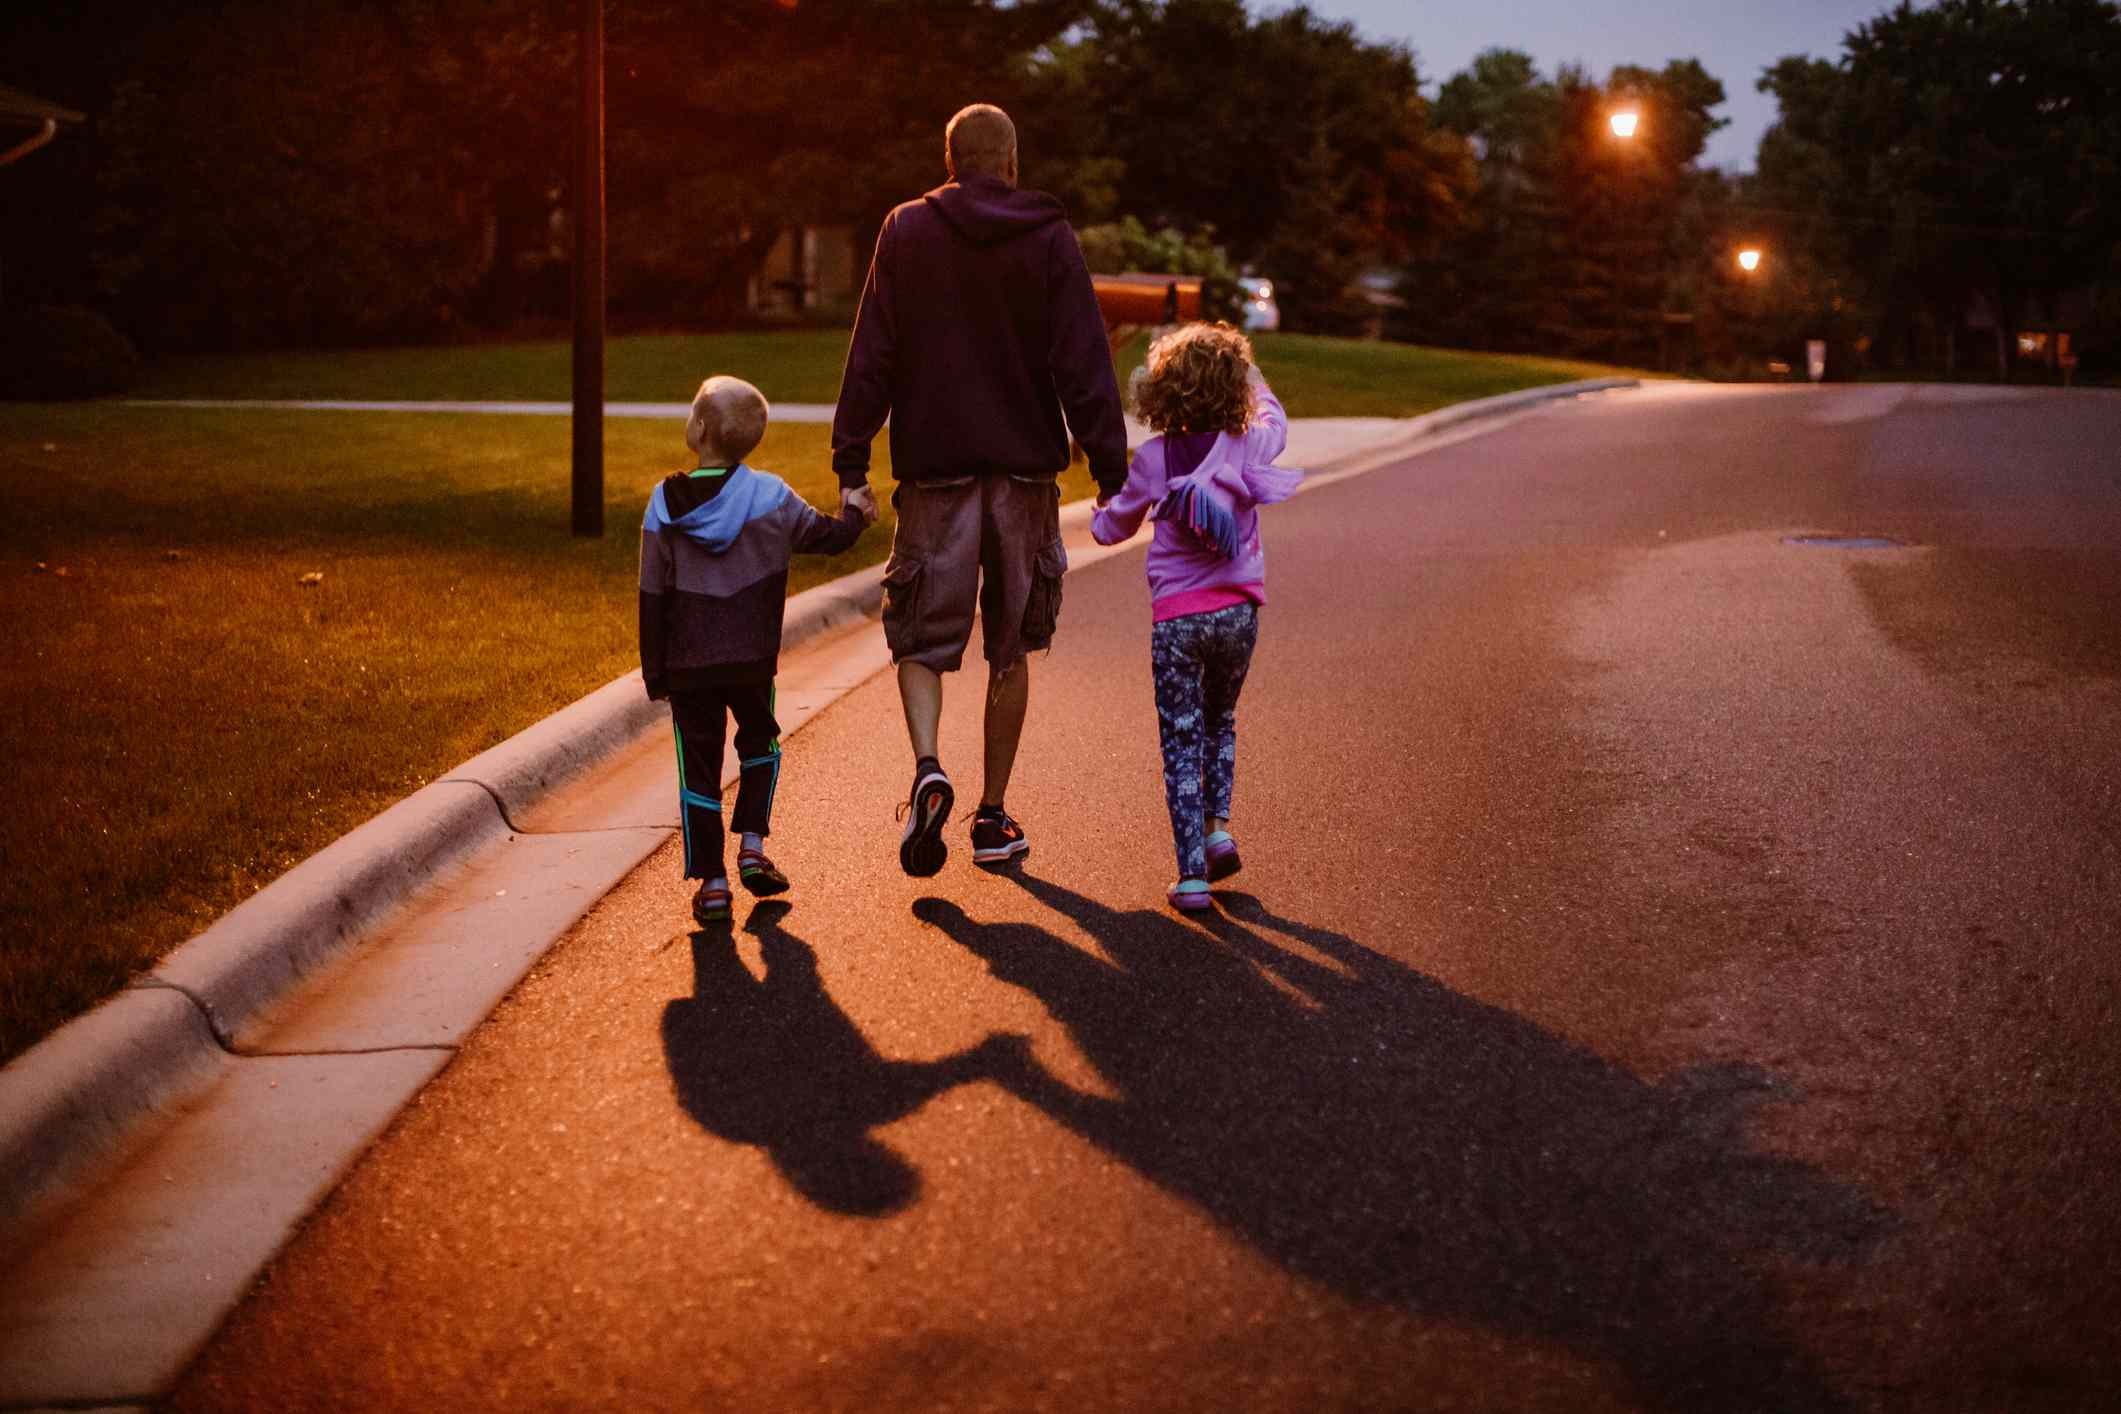 Father, son, and daughter taking a nighttime stroll